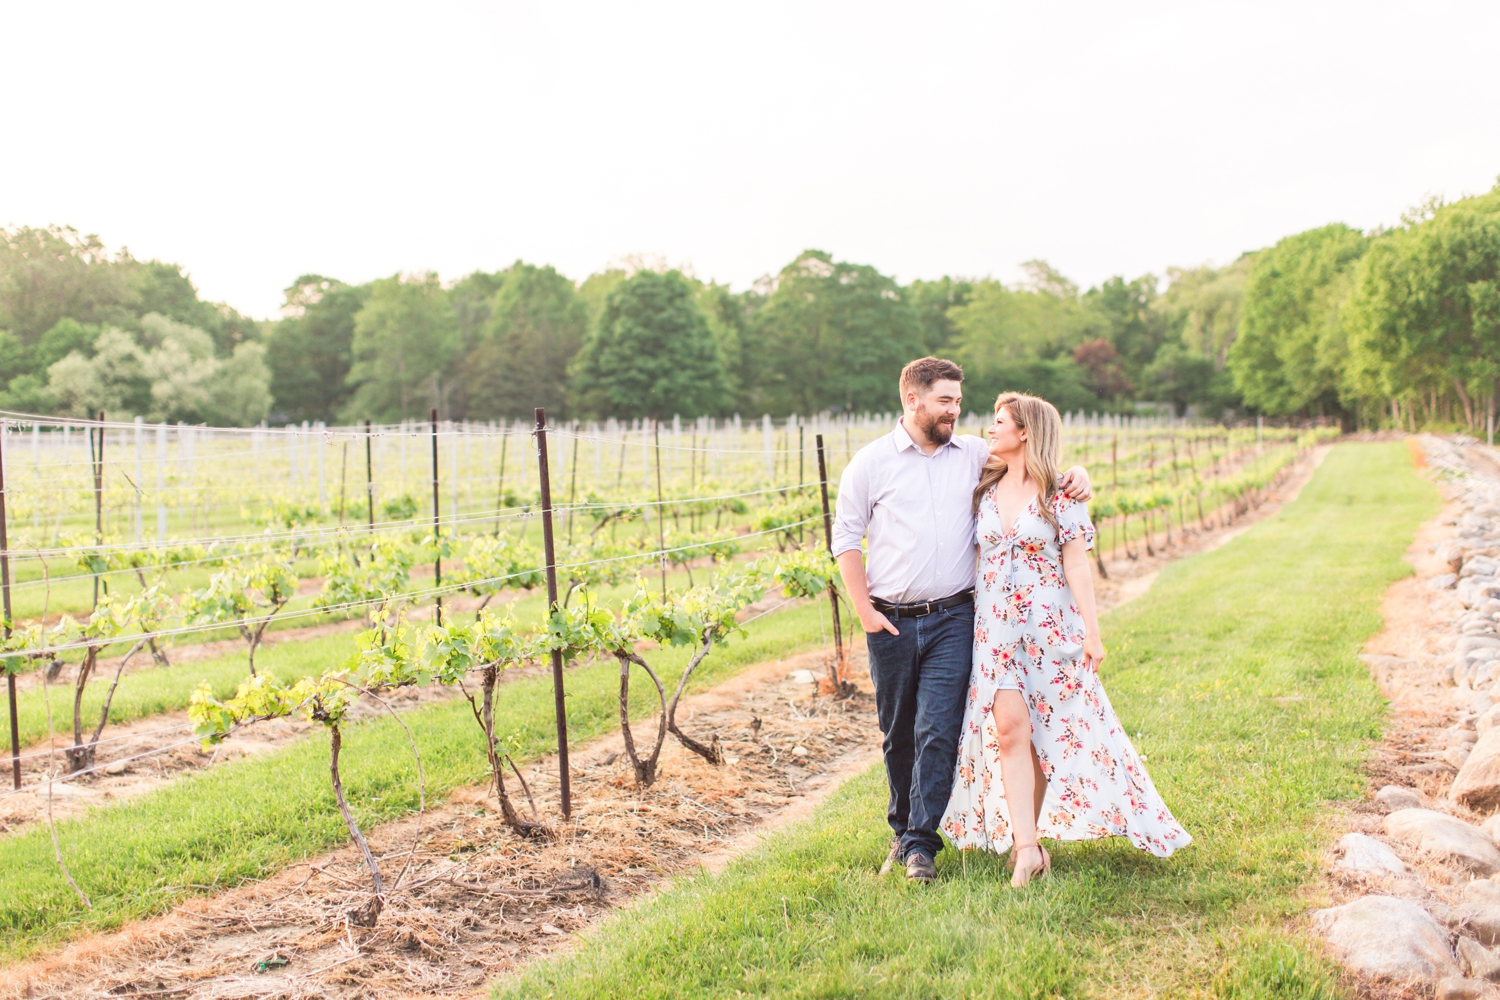 chamard-vineyards-engagement-session-clinton-connecticut-wedding-photographer-shaina-lee-photography-photo-10.jpg